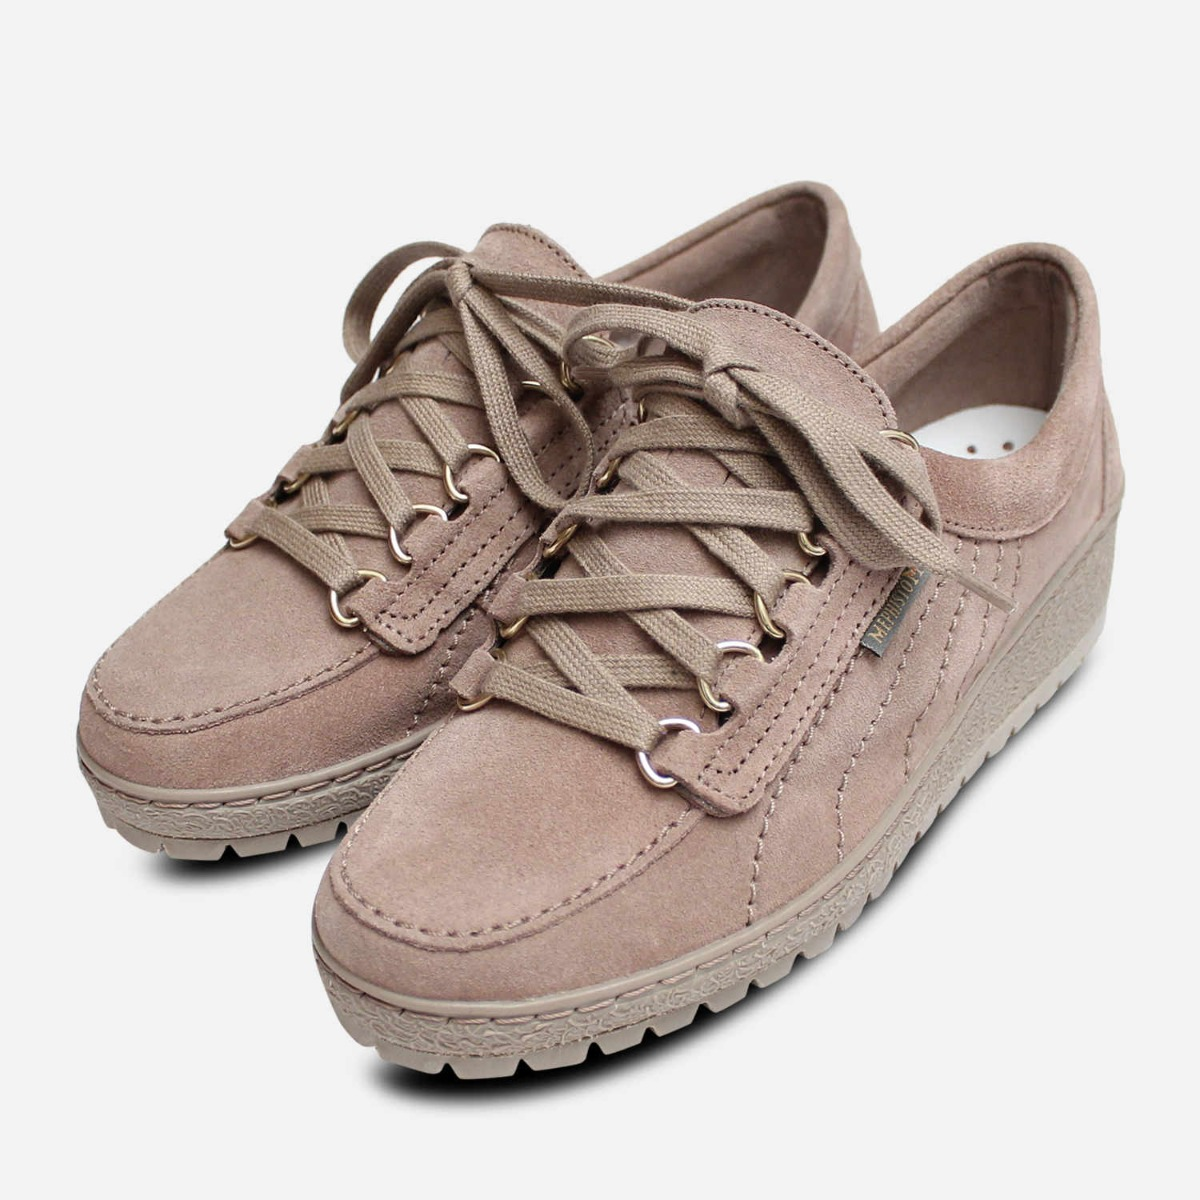 Mephisto Womens Lady Lace Up Shoes in